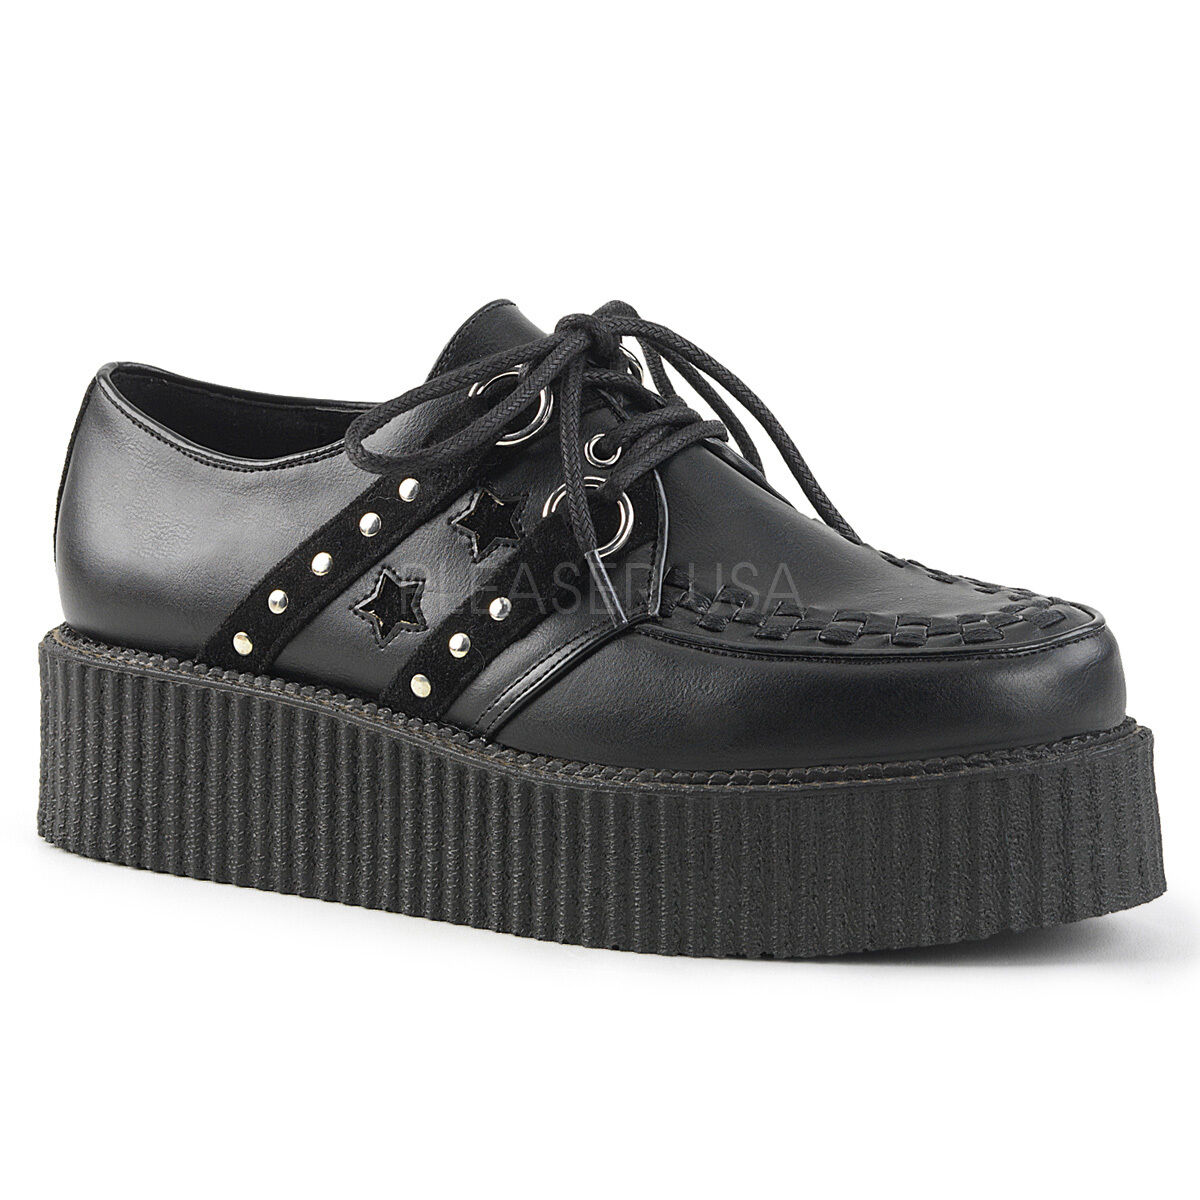 DEMONIA Men's Gothic Punk 2  Platform Creepers shoes Sudding & Faux Suede Accent